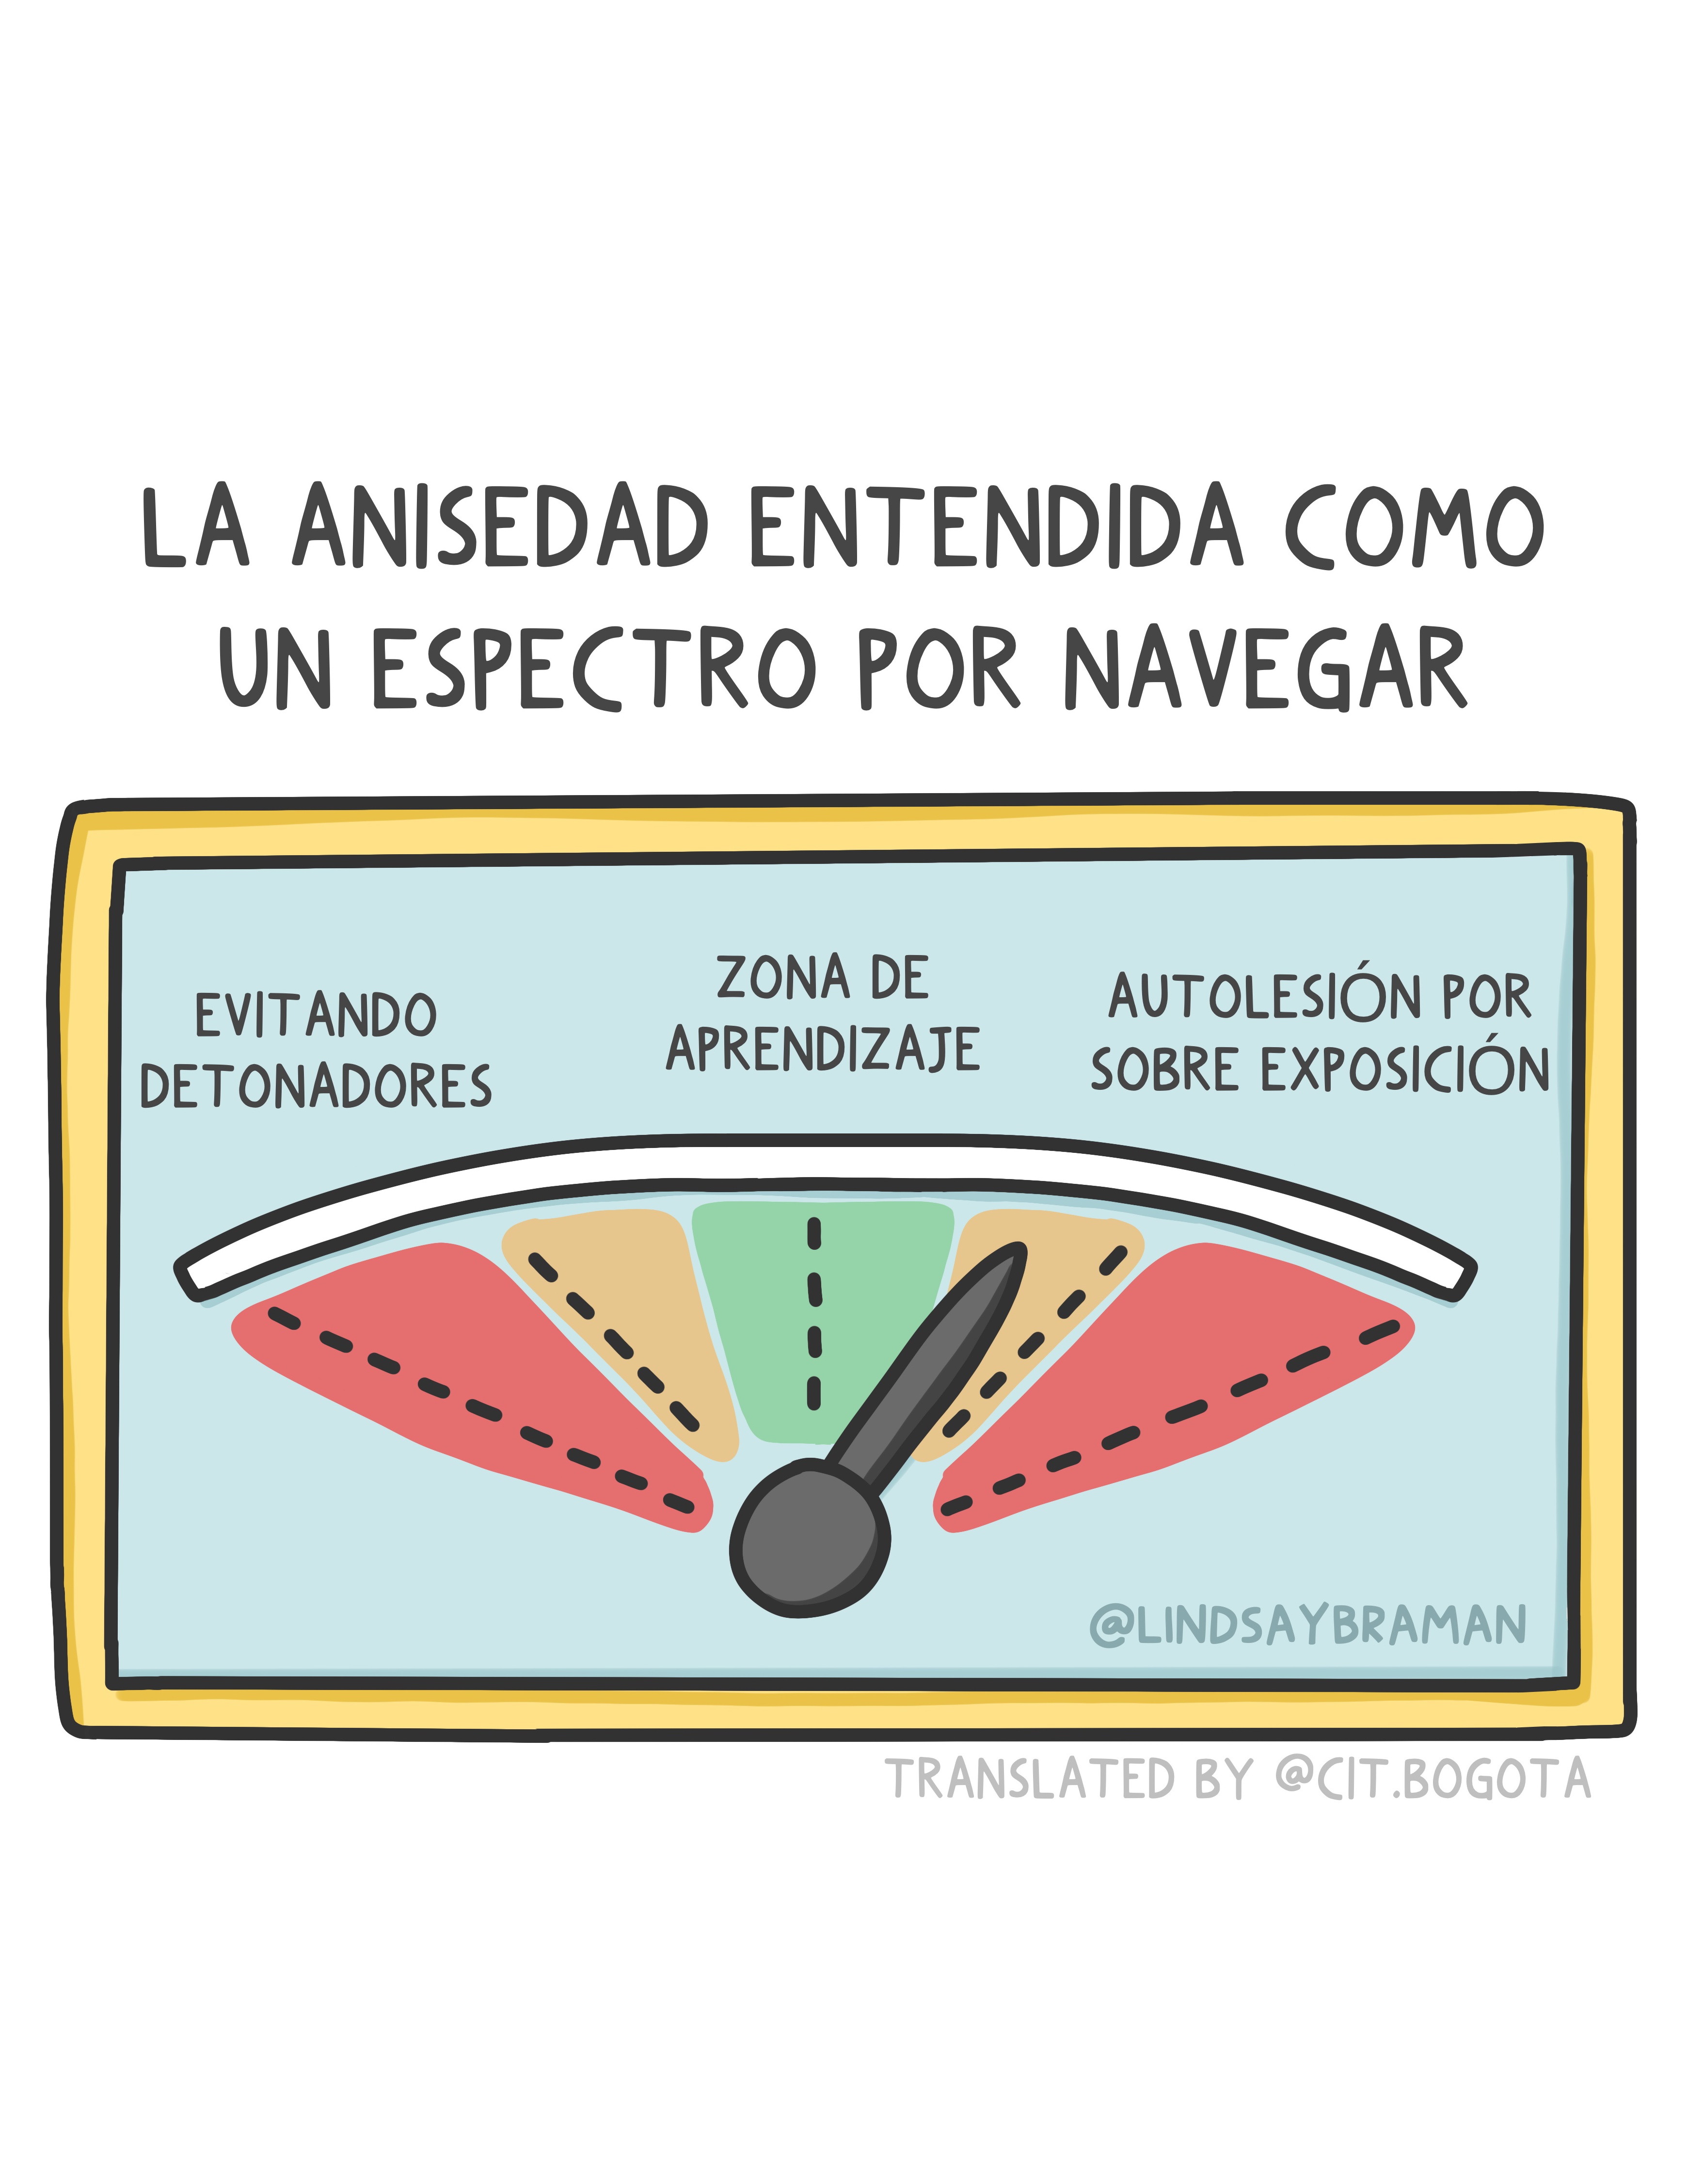 """Title reads in spanish: """"Spectrum of anxiety coping Underneath, a spectrum is drawn. There is red on the extreme ends of the spectrum with labels. The red spectrum end on the left has text underneath that says, """"Shaping life to avoid triggers."""" The other red spectrum, on the right, has text underneath that says, """"Self-harm via over-exposure."""" Next to the red ends of the spectrum are orange and yellow blocks, with a green block in the middle labeled, """"Growth Zone,"""" where the dial is."""